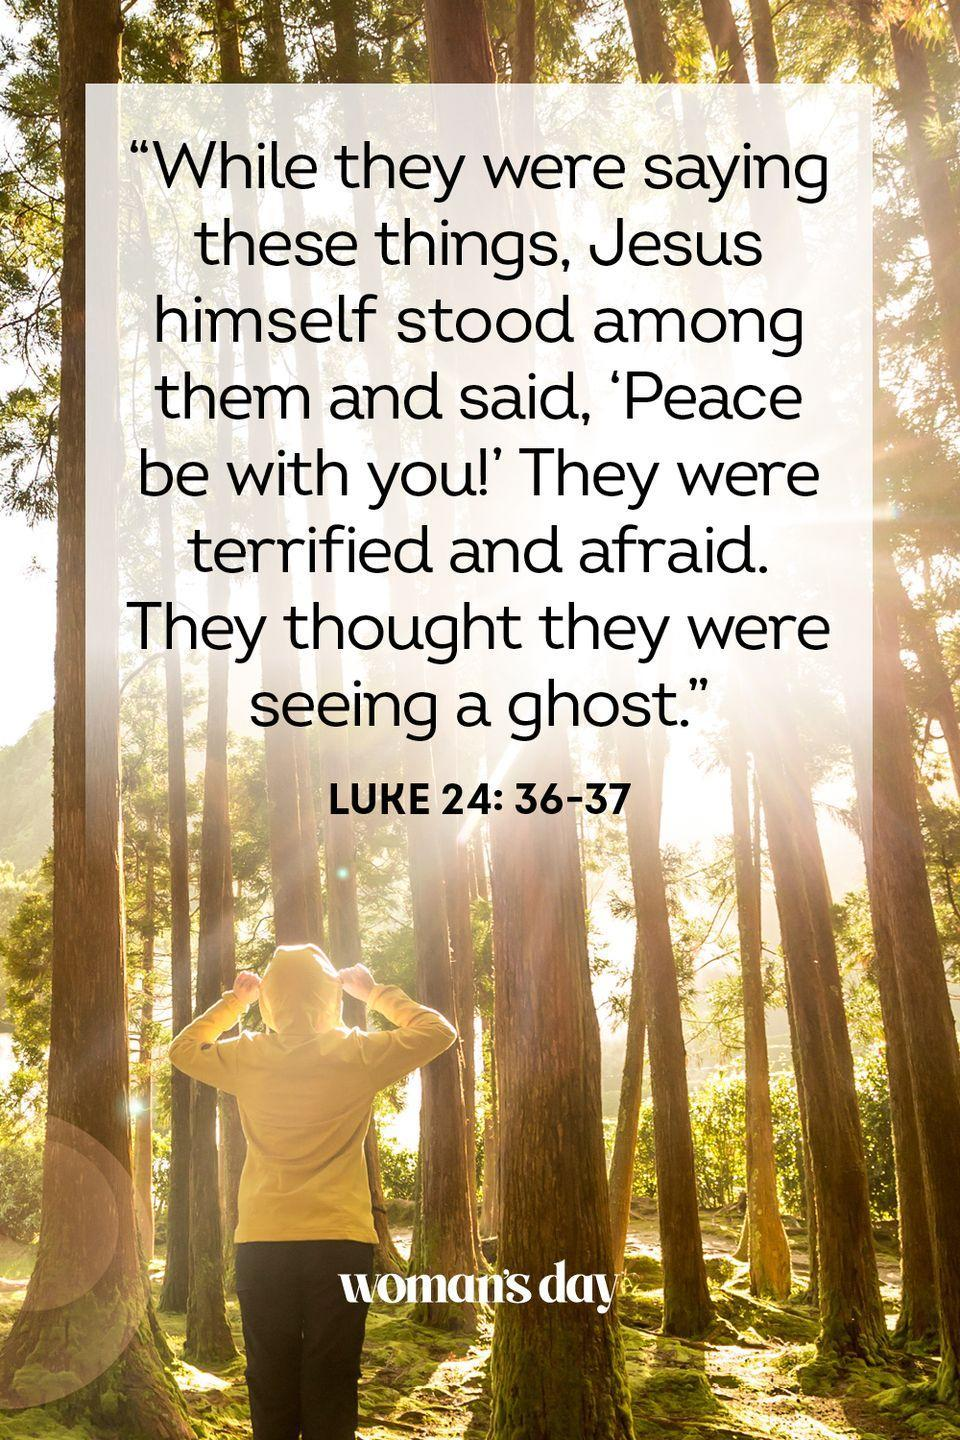 """<p>""""While they were saying these things, Jesus himself stood among them and said, 'Peace be with you!' They were terrified and afraid. They thought they were seeing a ghost."""" — Luke 24: 36-37</p><p><strong>The Good News:</strong> Living righteously, trusting in the word of God, is the surest path to a life of peace.</p>"""